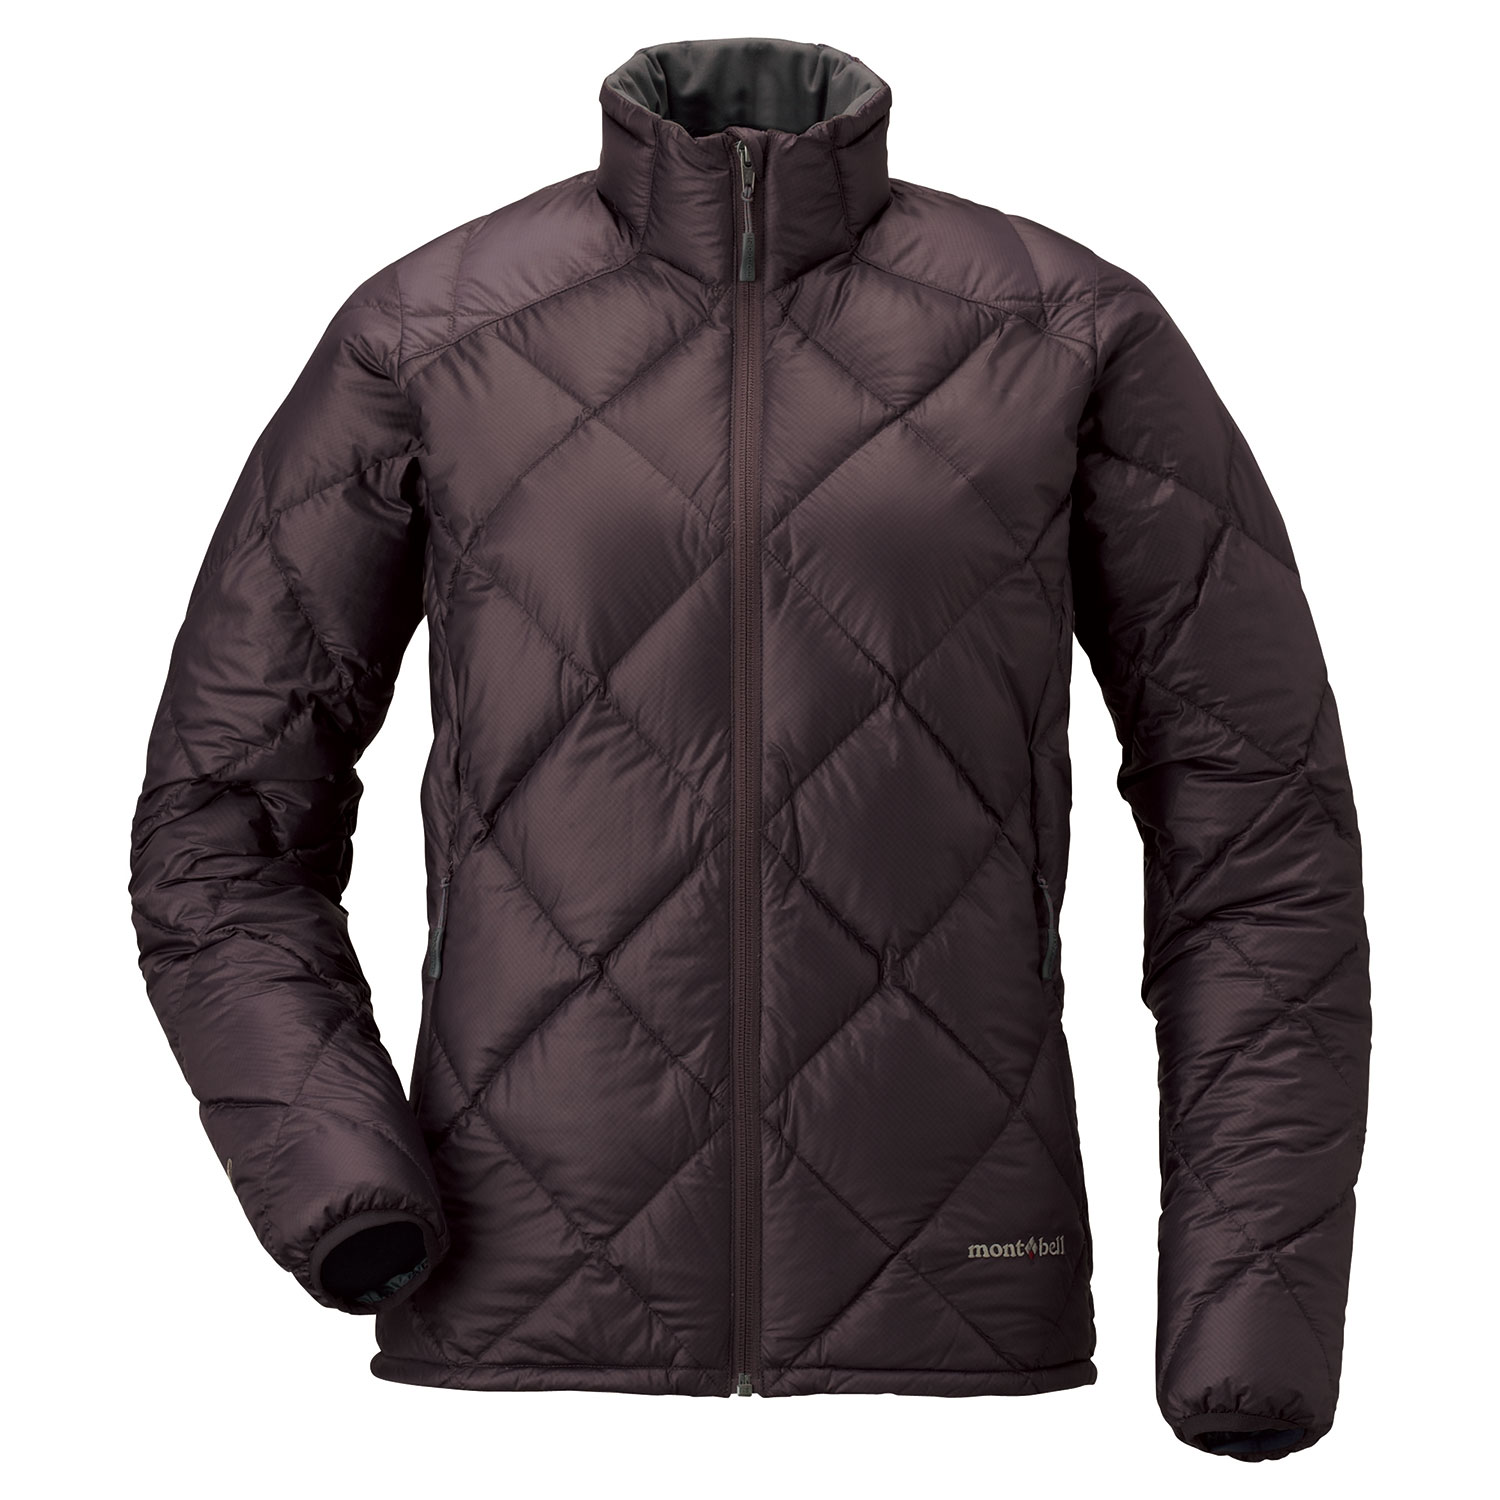 mont-bell Alpine Light Down Jacket Women's Dark Maroon